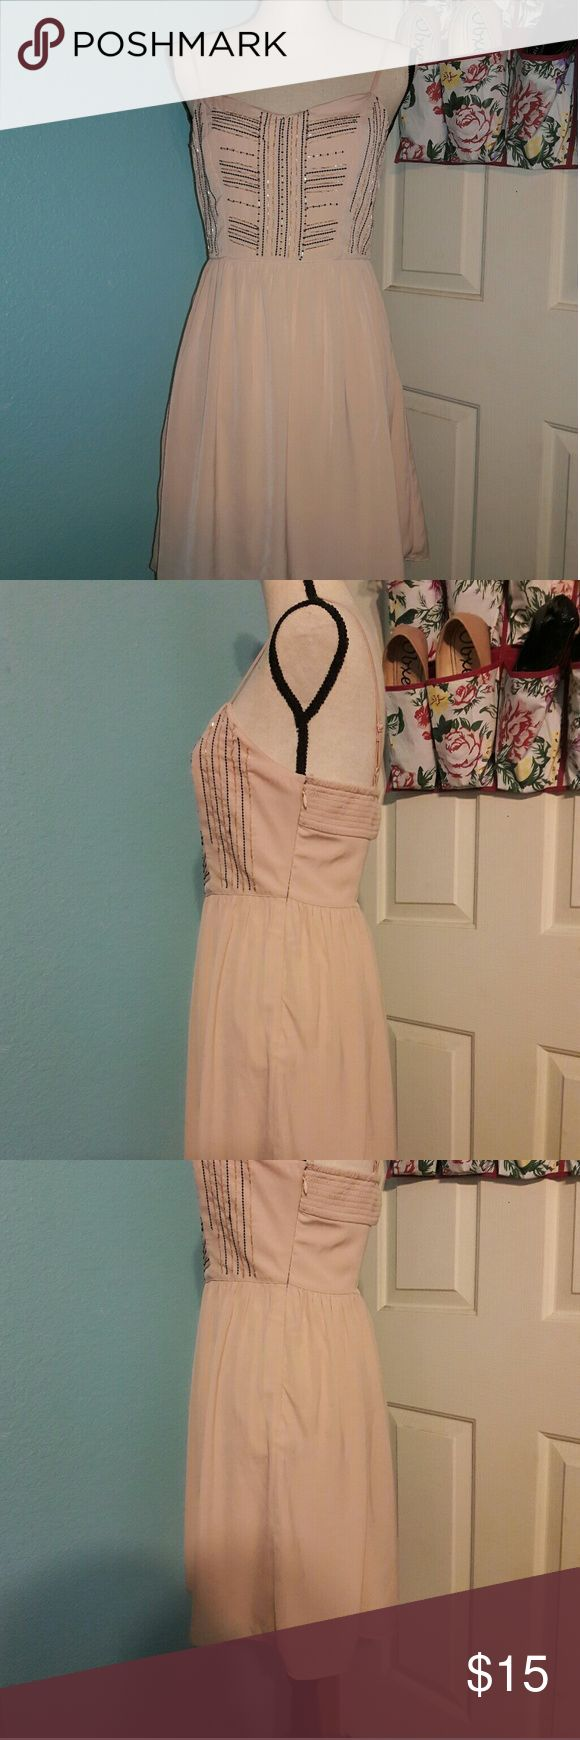 Cute Pink American Eagle Outfitters Dress This is a cute pink dress, perfect for summer. It looks in very good condition. Does have some flaws shown in the last 3 pictures. Even though there's those flaws I don't think you'll be able to tell unless you stare  to try to look for then then that's when you're able to tell. American Eagle Outfitters Dresses Mini